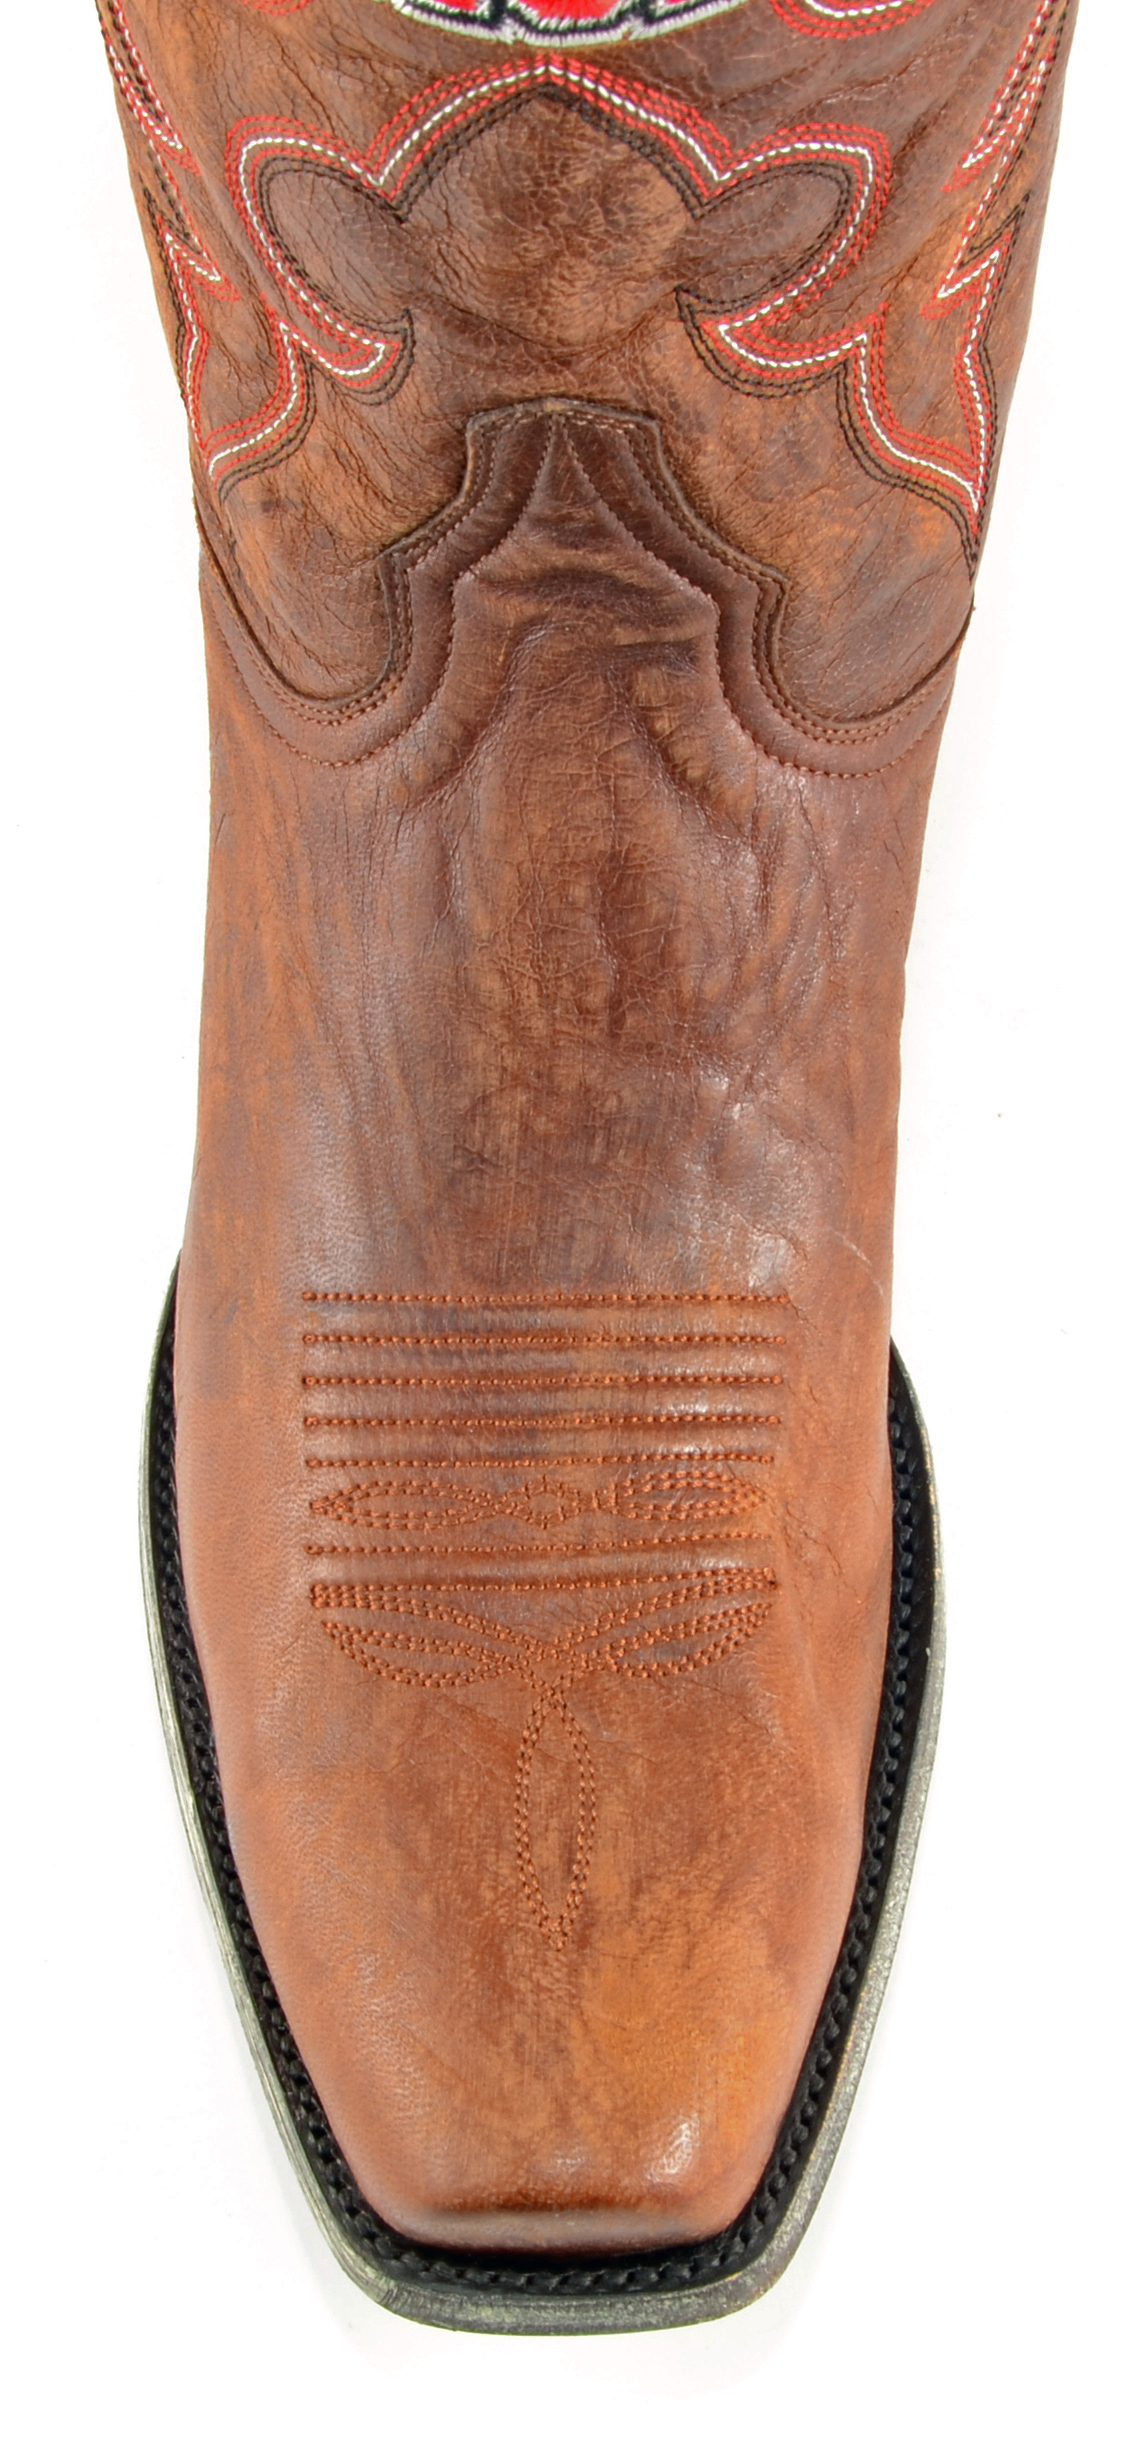 Gameday Boots Leather South Dakota Board Room Cowboy Boots